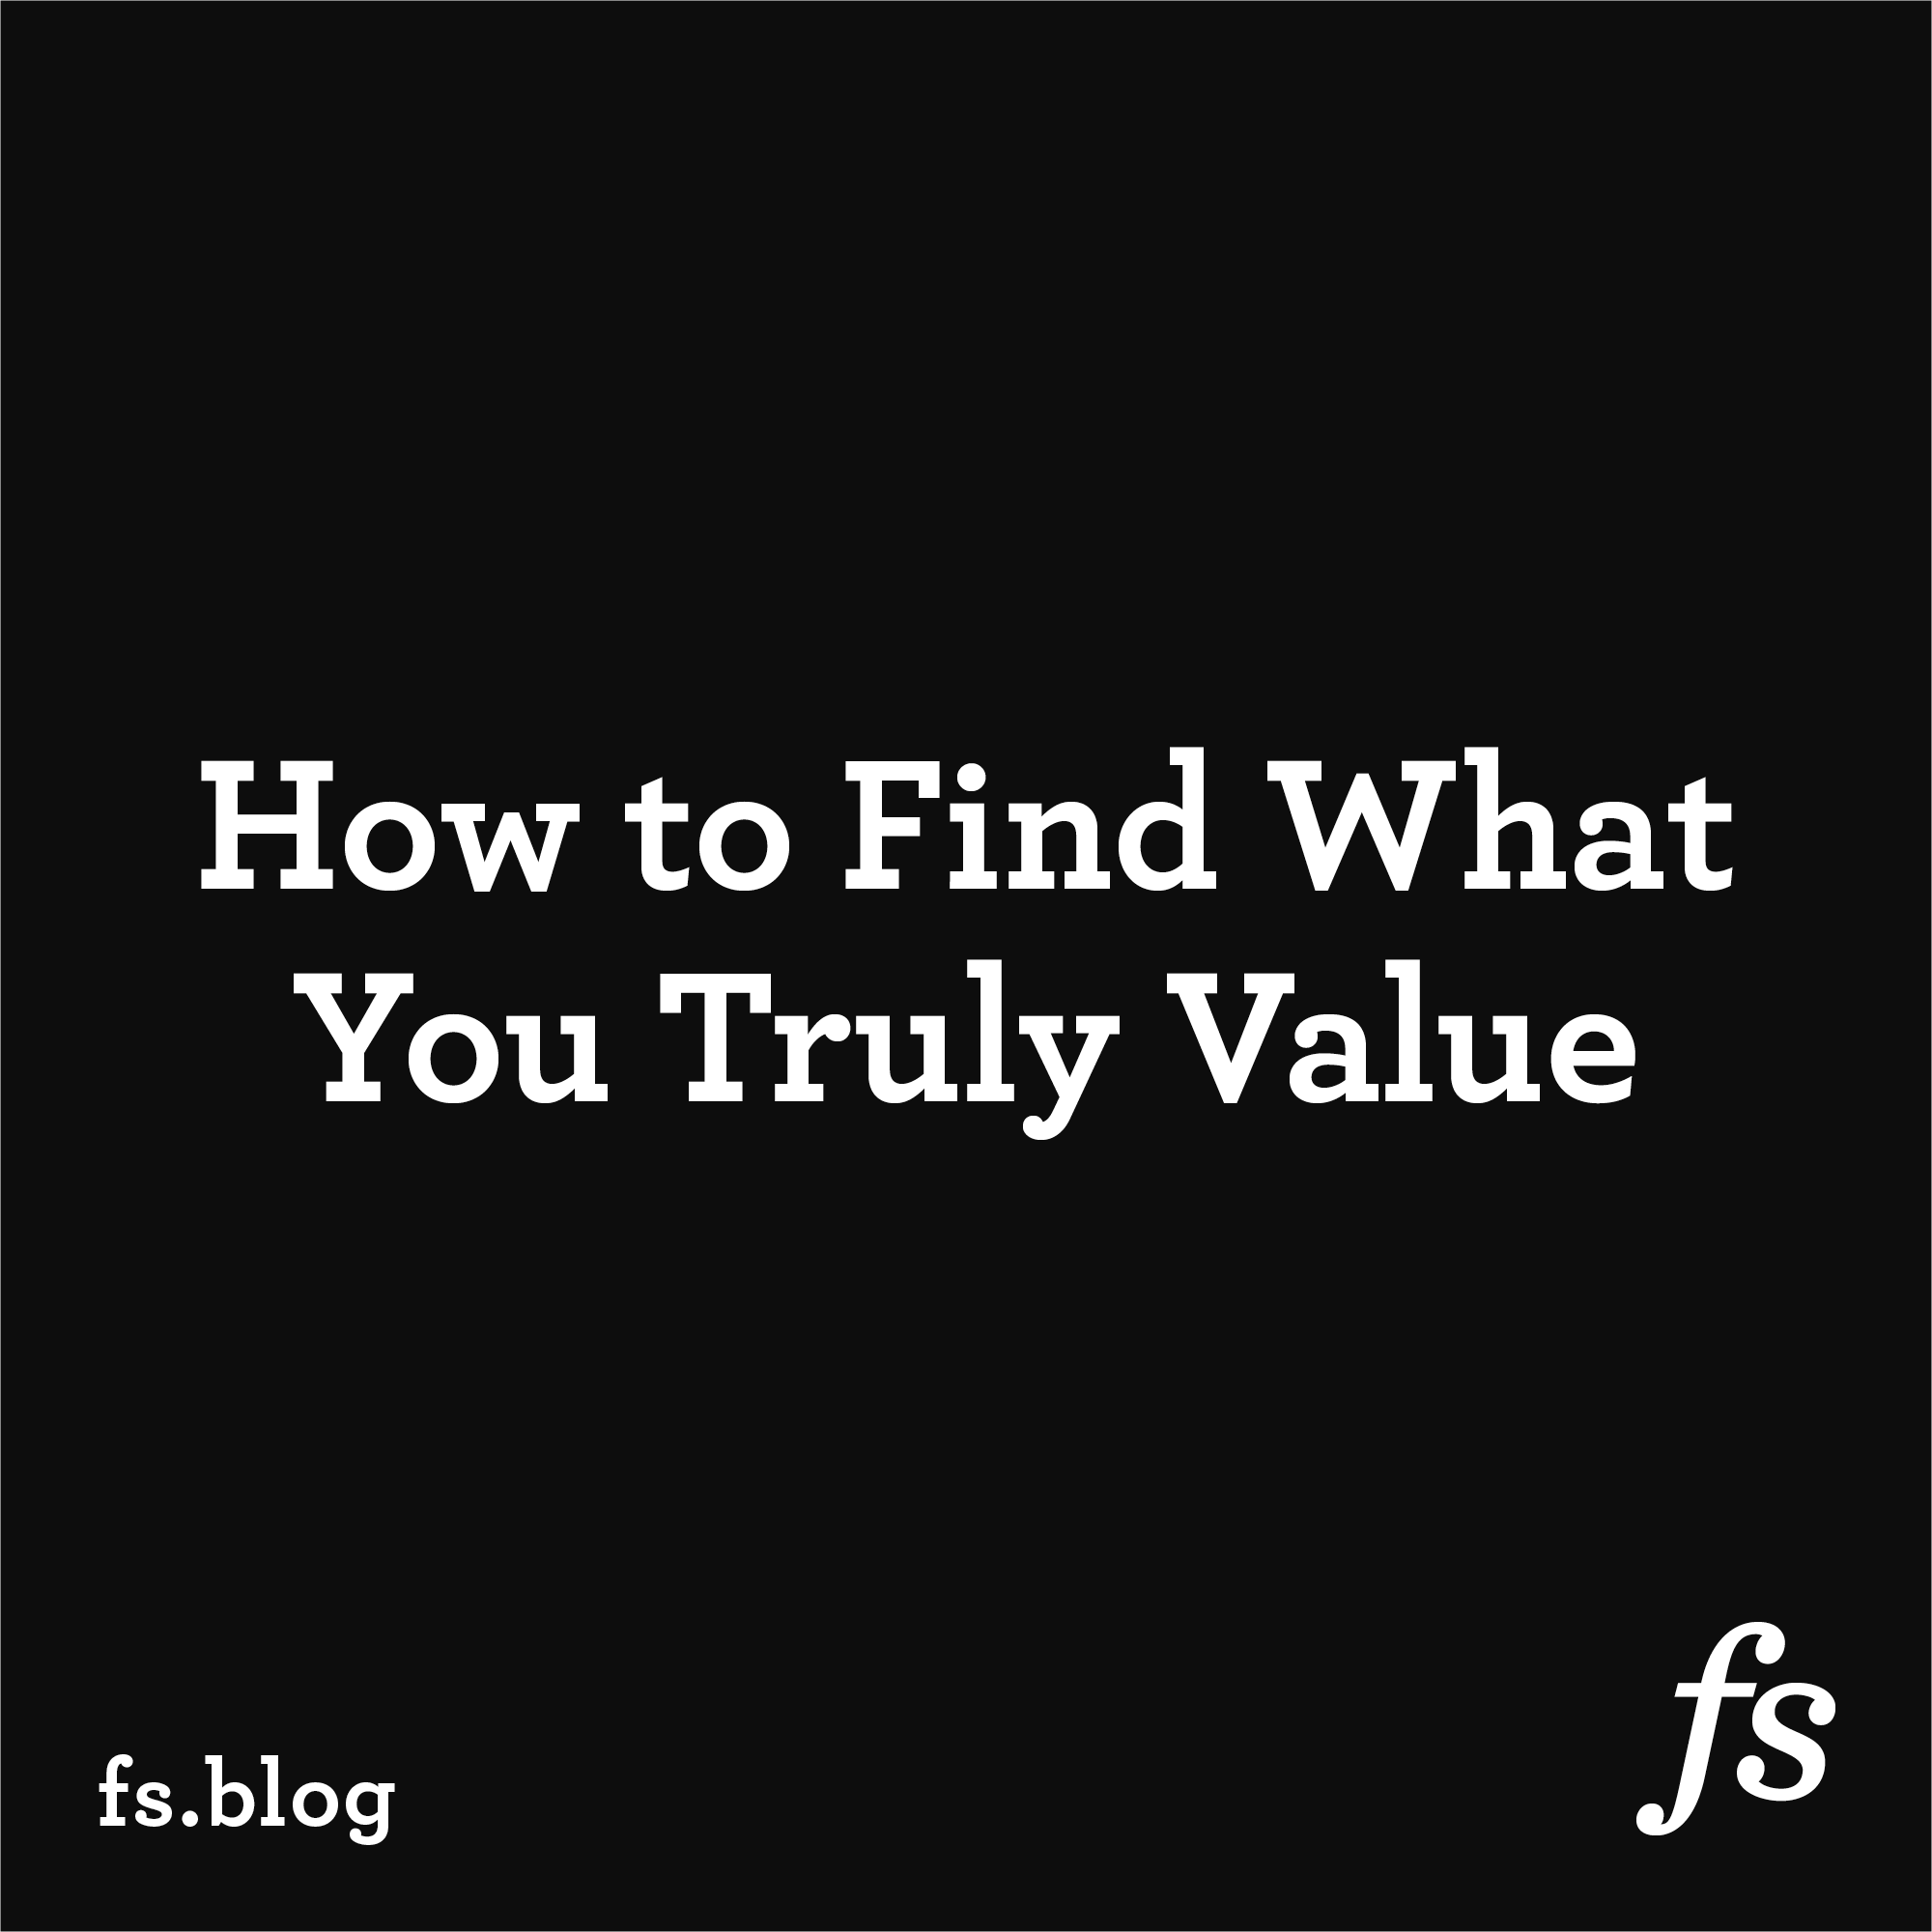 What You Truly Value